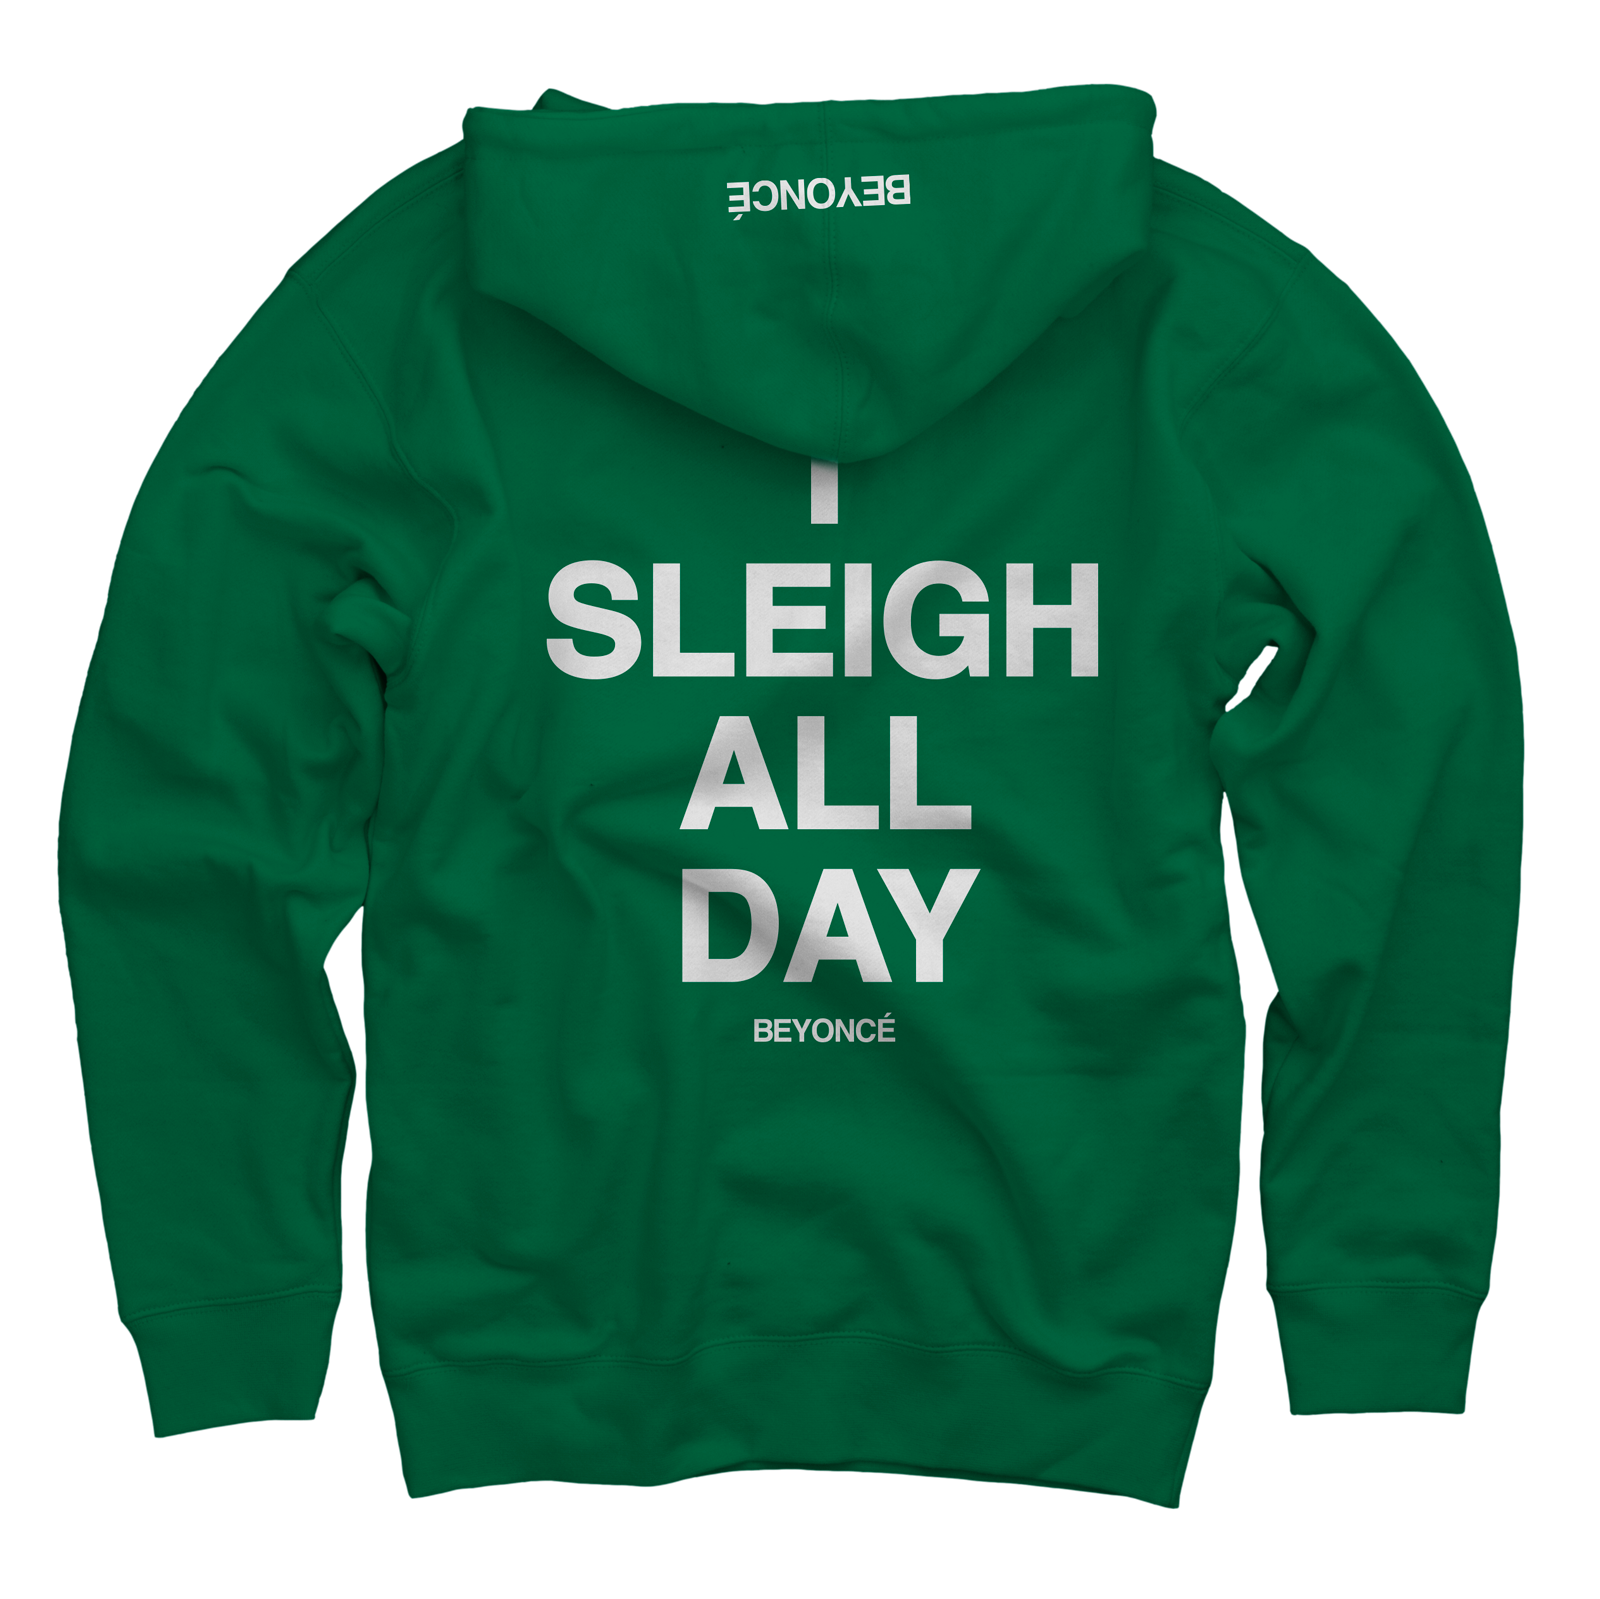 Holiday Merch Like Her All Other 'sleighs'just Beyoncé's cTF1lKJ